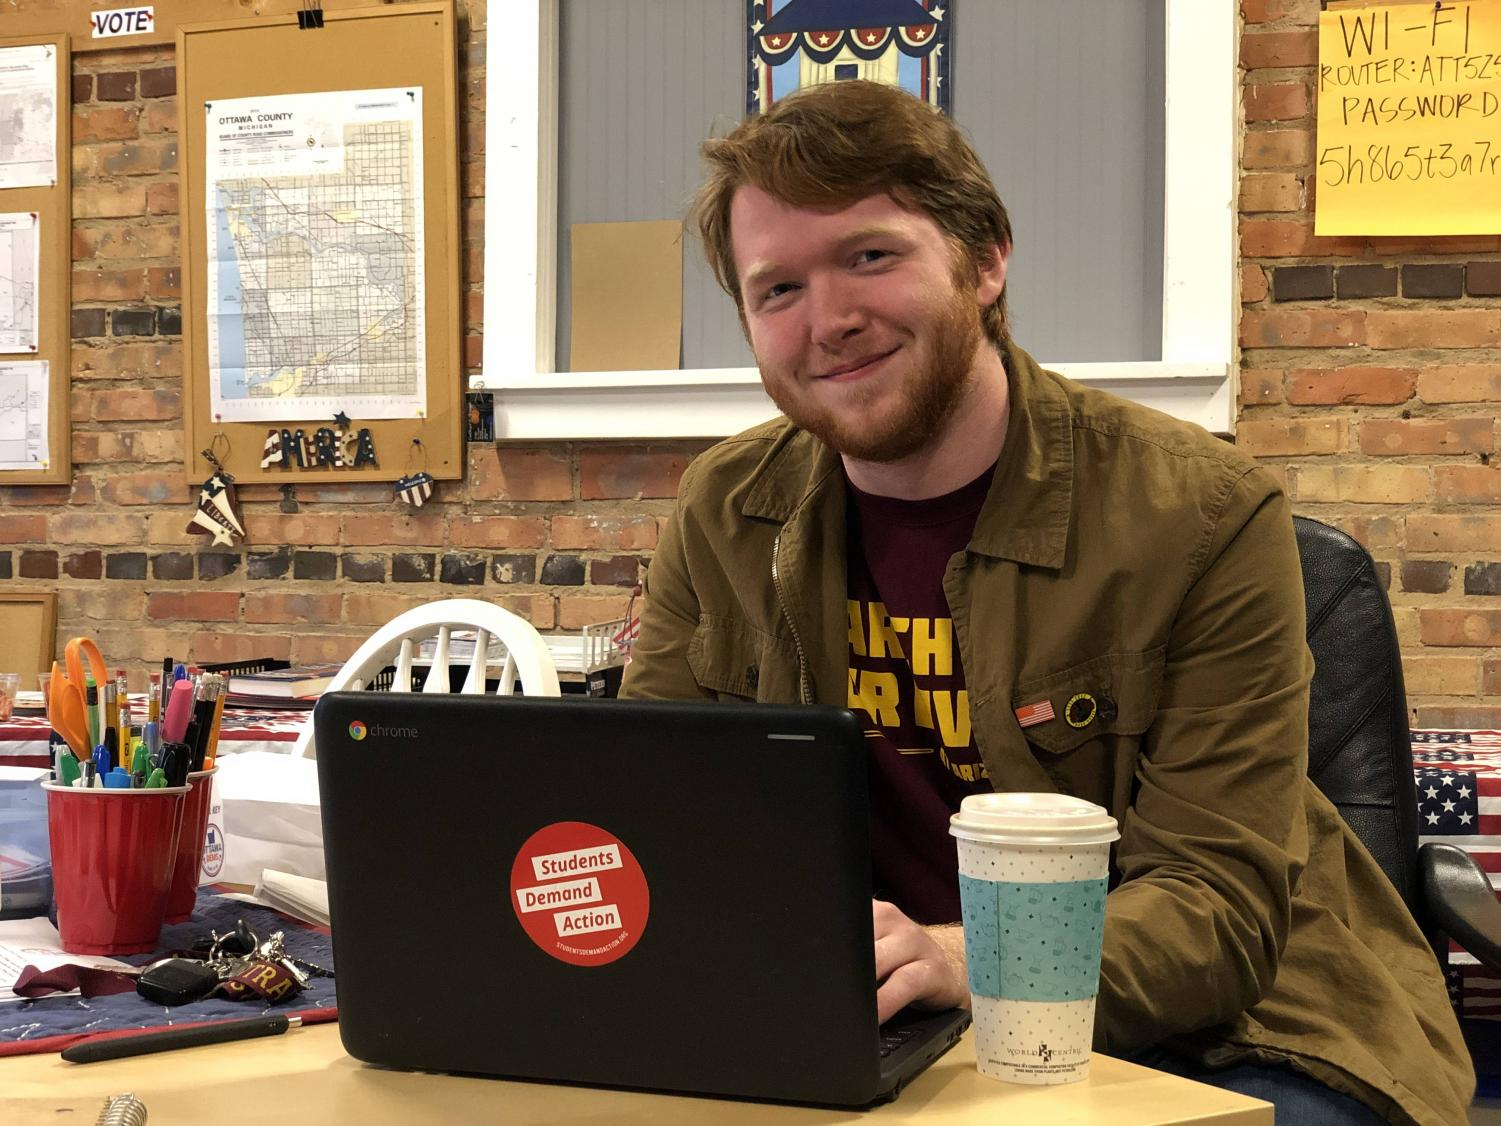 """As senior Jackson Schulte sips his latte, he muses about coordinating activist efforts. """"What really pisses me off is social media activism,"""" Schulte said. """"When people see something on Instagram, so they decide to share it on their story to plant a tree, that makes me angry. You sitting on your butt is not the extent to which you should be involved, that's not going to make a difference or help anyone."""""""